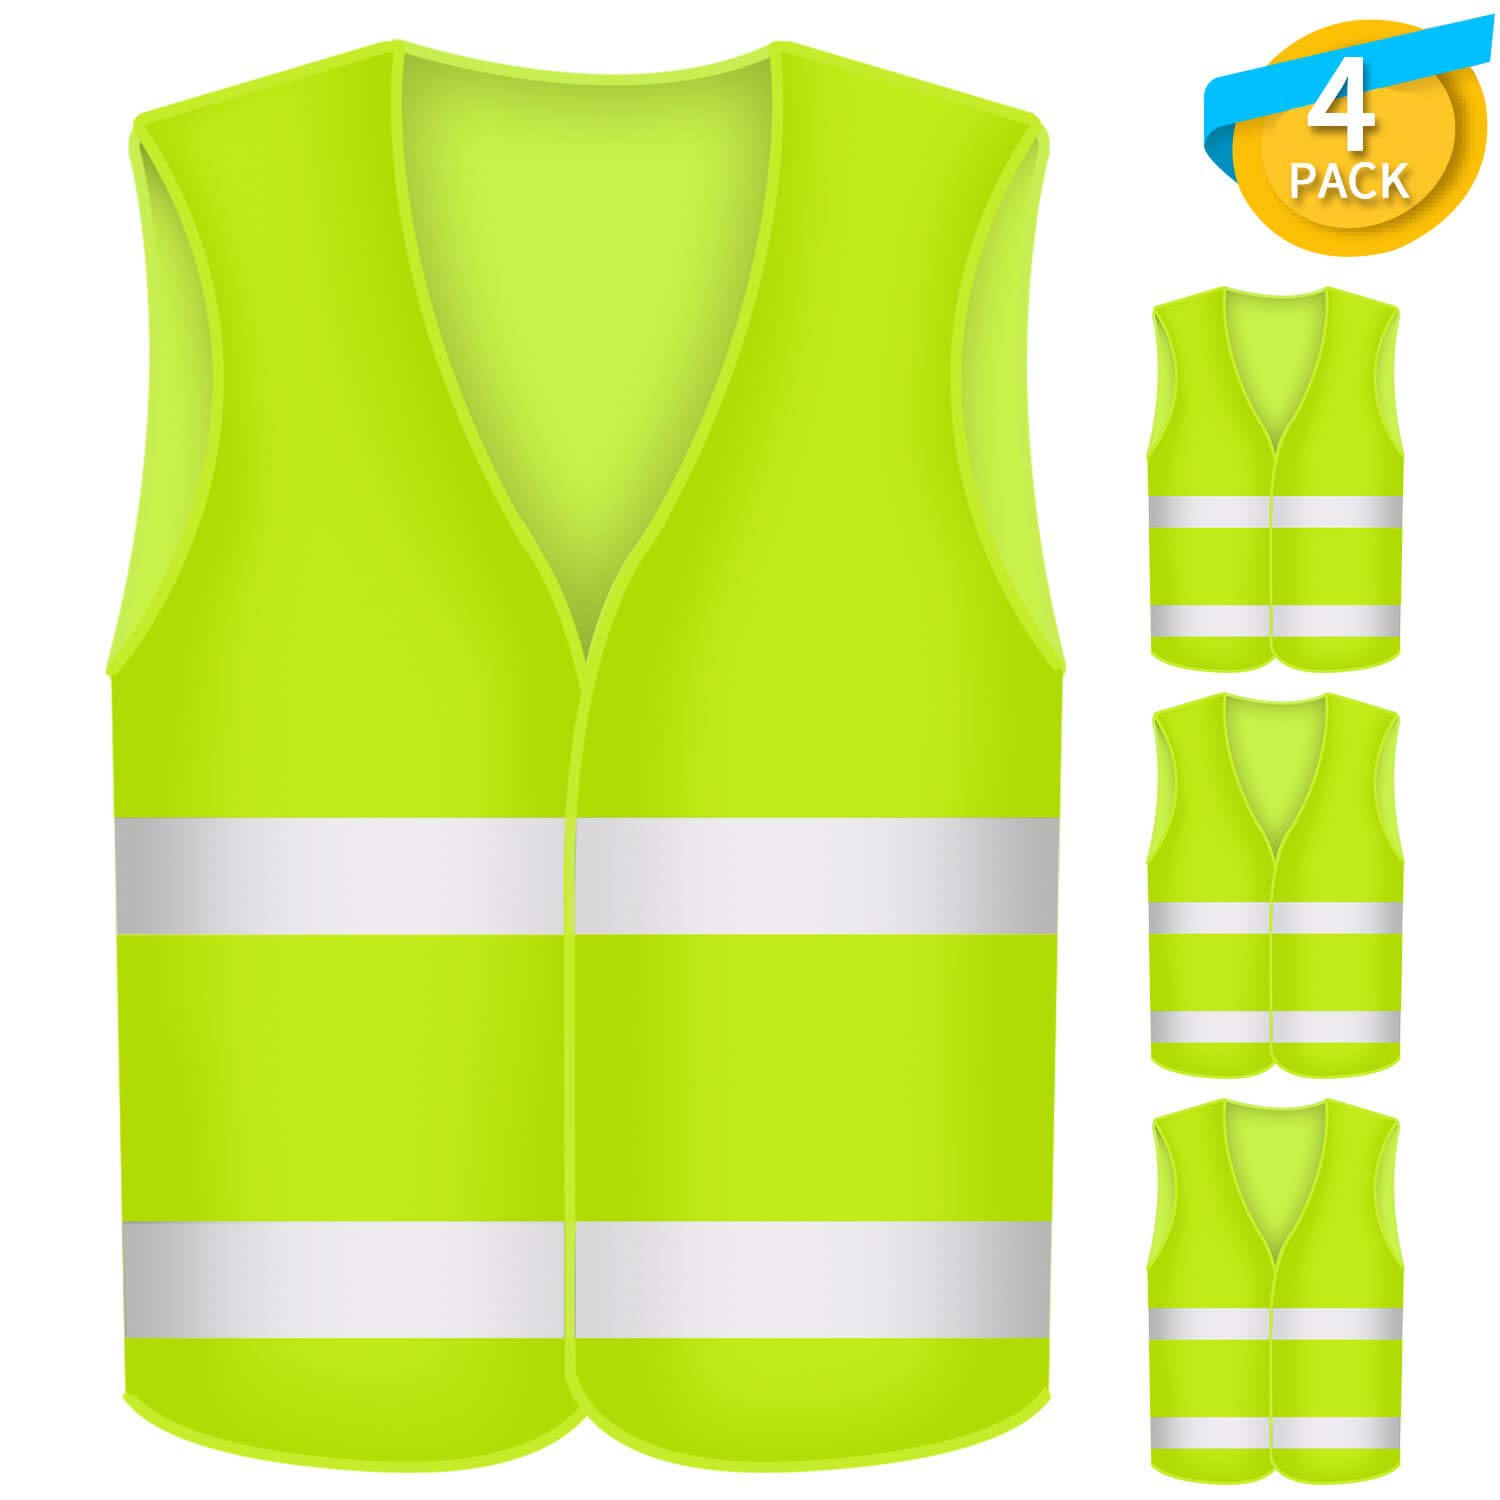 Fesoar High Visibility Vest, Reflective Safety Vest, Breakdown Aid, Ensuring the Safety of Drivers and Workers with High Risk, Washable, Polyester, Neon Yellow, Pack of 4, 125cm